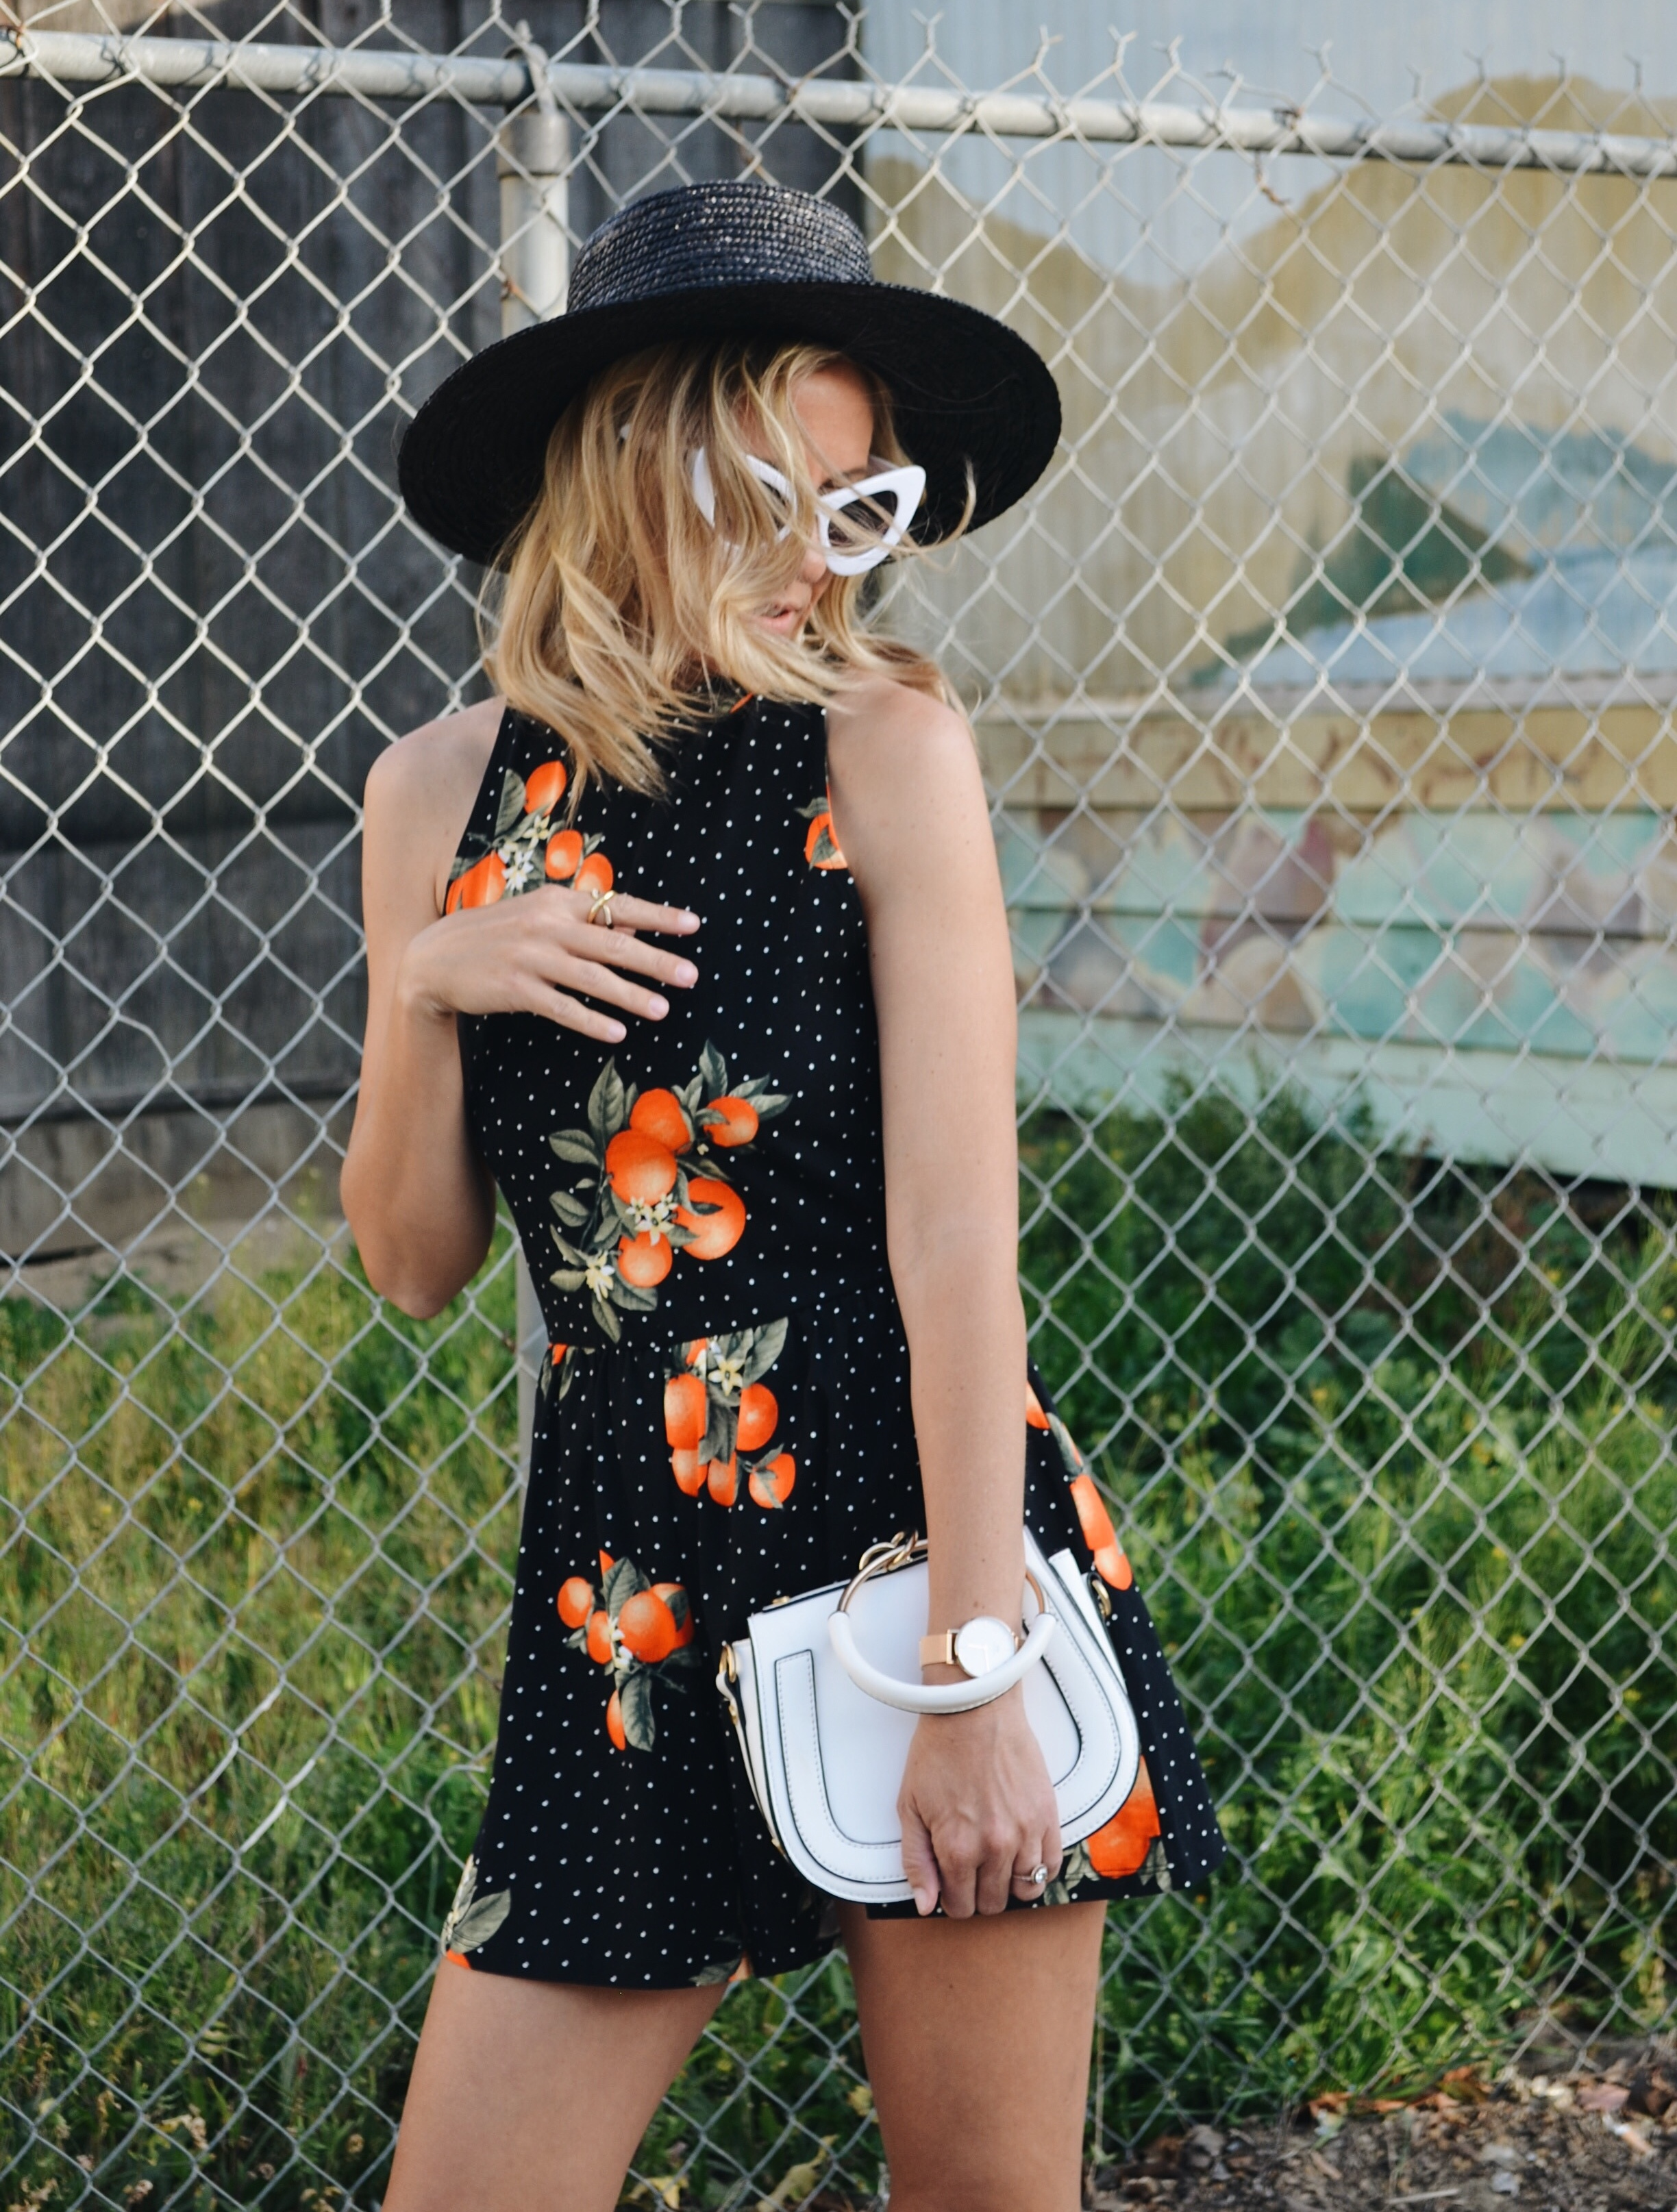 ORANGE ROMPER - Jaclyn De Leon Style - summer style + fruit inspired look + spring outfit + fun edgy street style + forever 21 + retro sunglasses + chloe dupe handbag + statement earrings